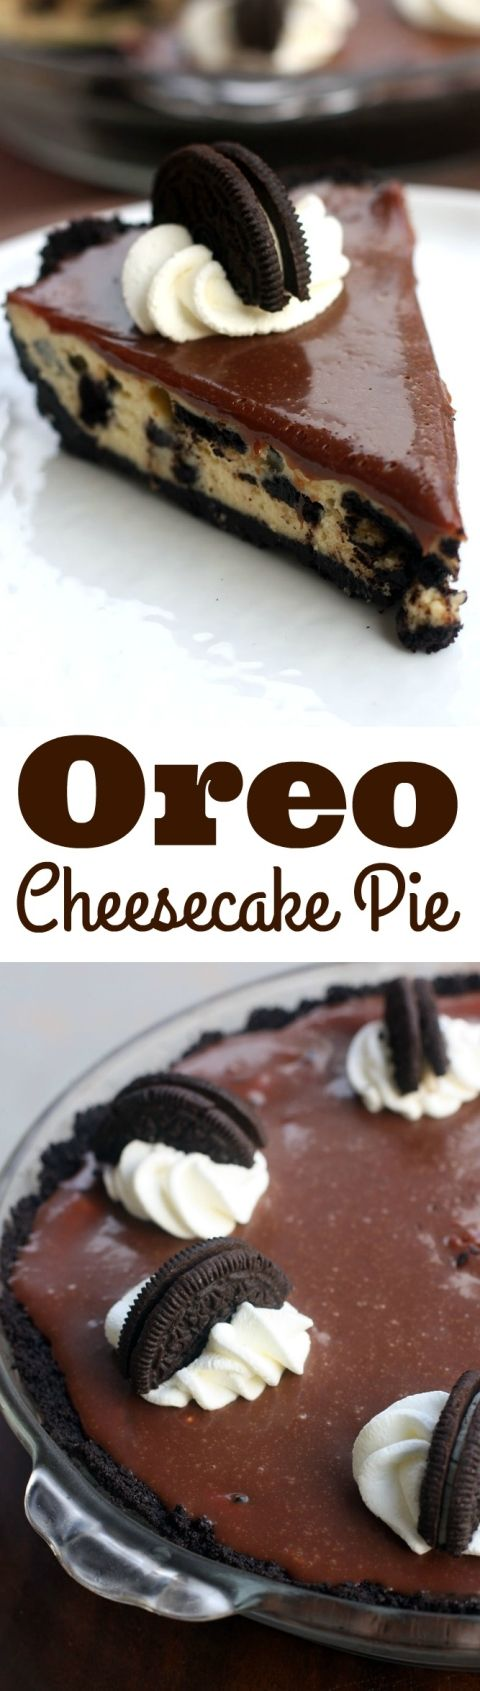 Oreo Cheesecake Pie--three steps to the easiest Oreo cheesecake ever! The BEST dessert! | Tastes Better From Scratch